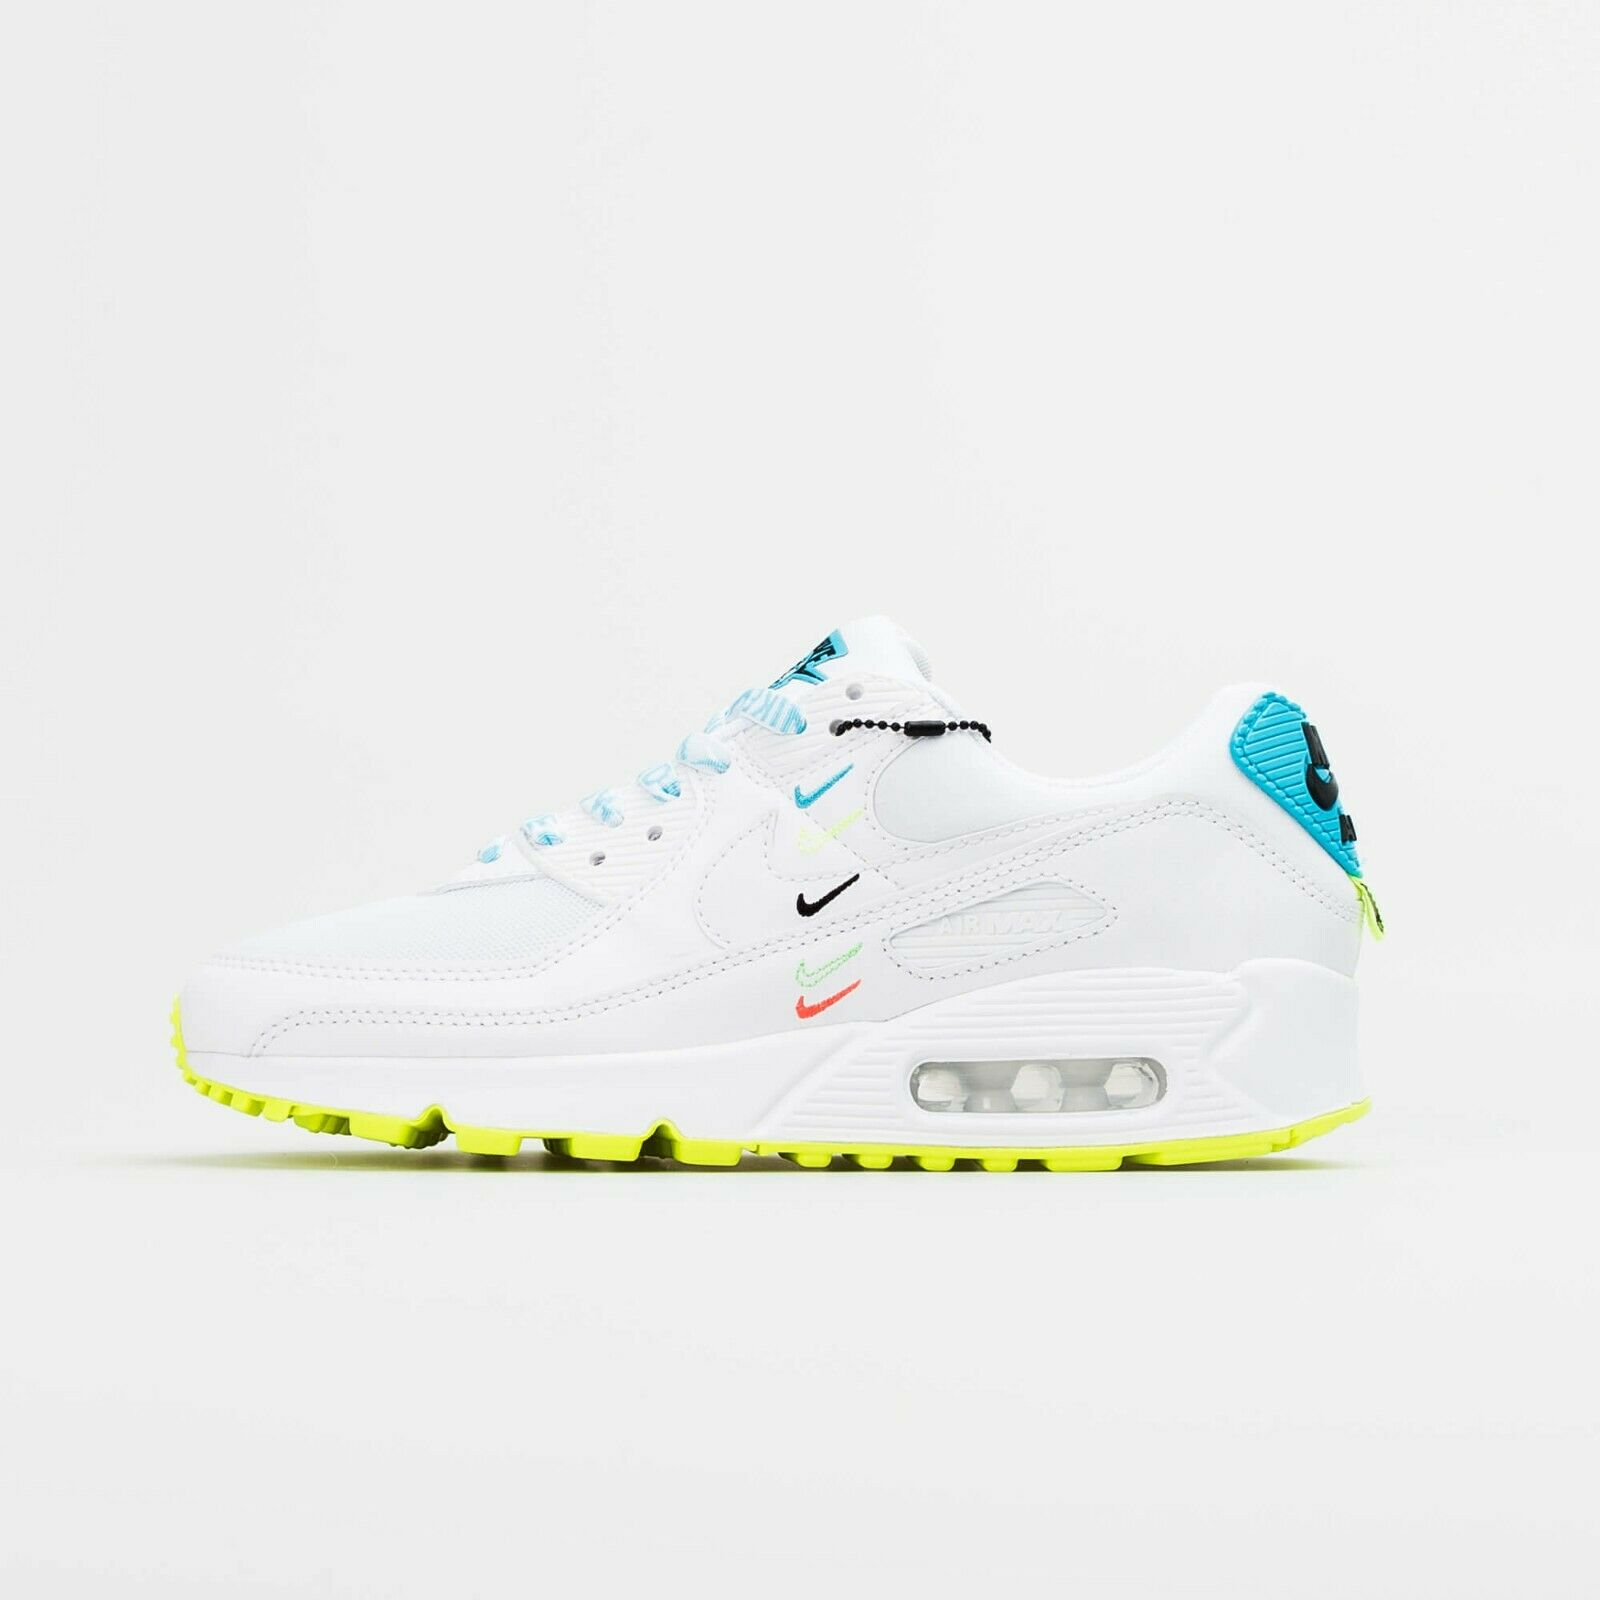 Size 7 - Nike Air Max 90 SE Worldwide Pack 2020 for sale online | eBay